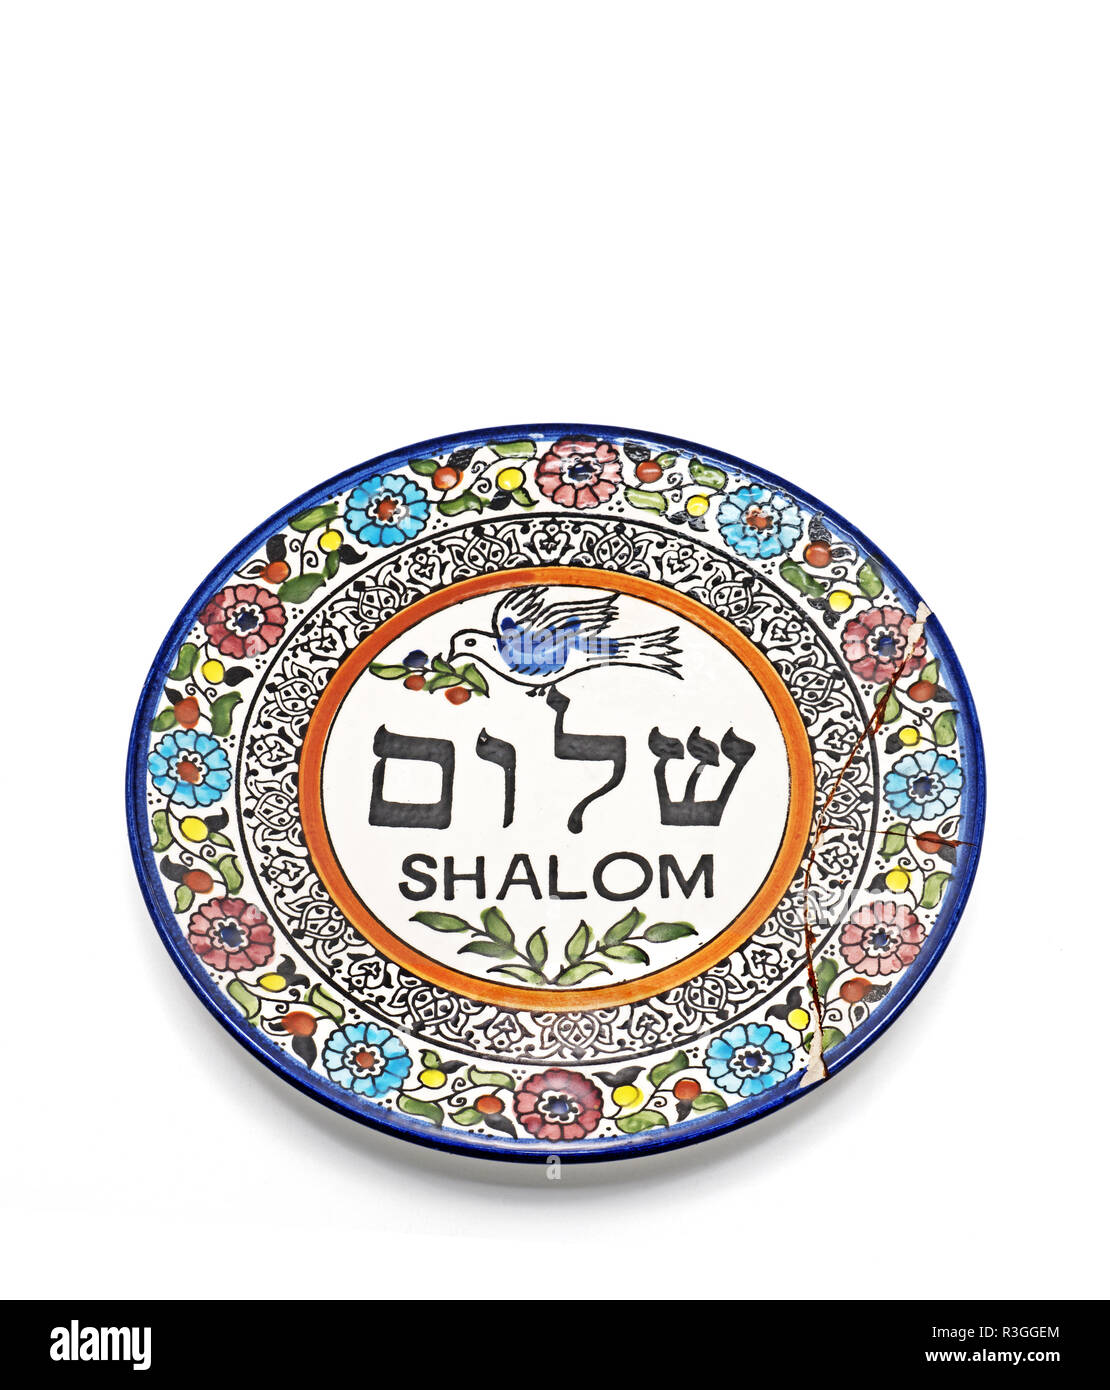 Antique Broken Ceramic Plate with Graphics and Hebrew Language Translation to word Shalom meaning to peace Isolated on White Background, Picture Conce - Stock Image